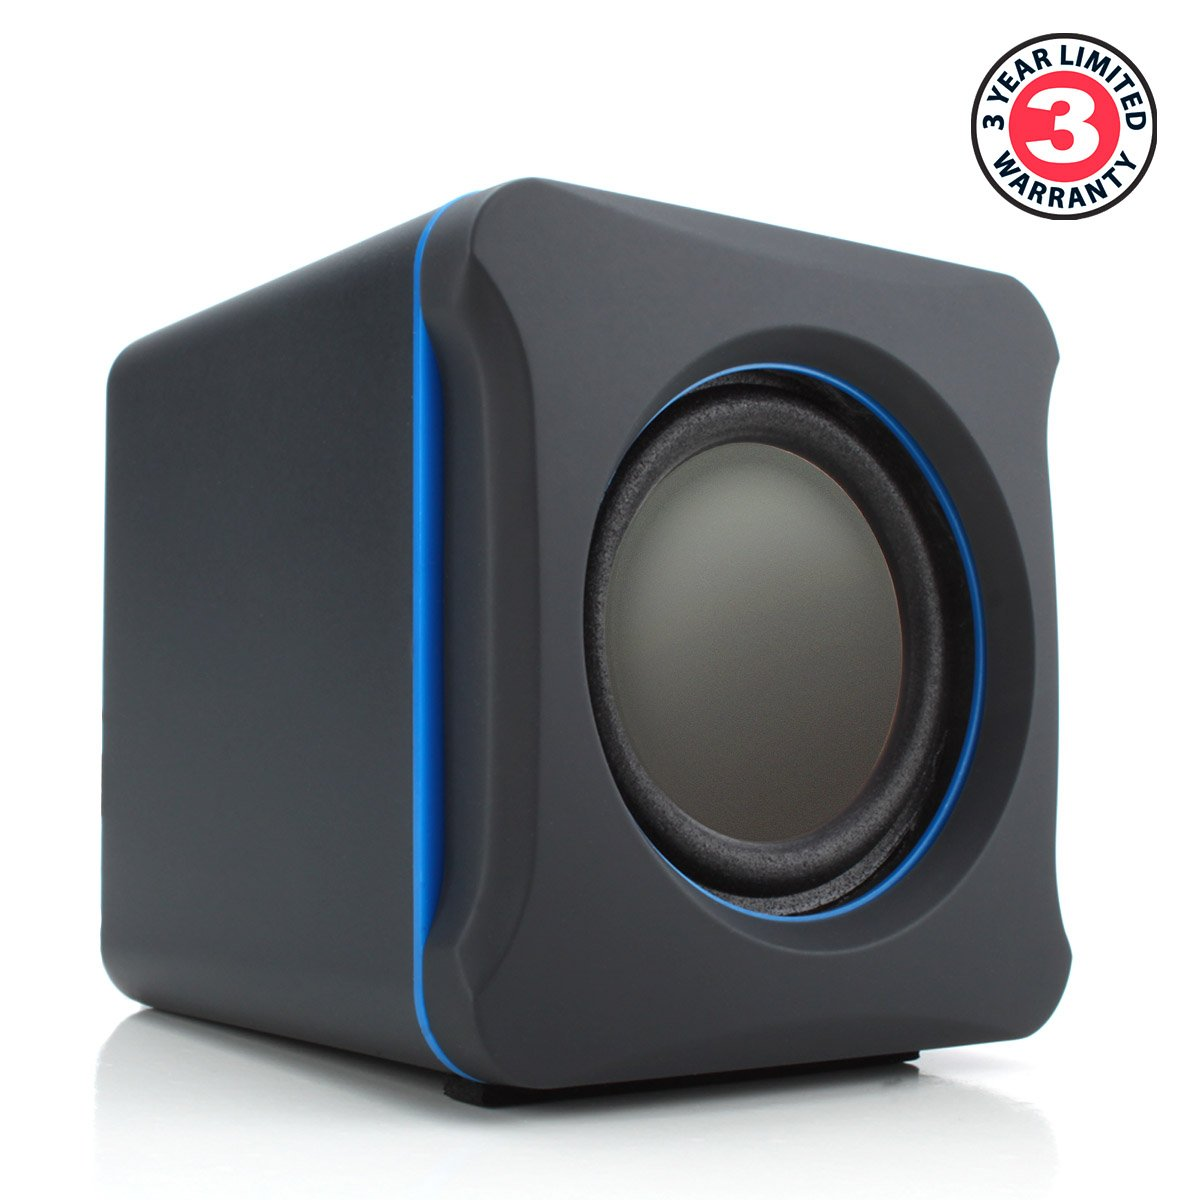 speakers with subwoofer. amazon.com: 2.1 pc speakers system with subwoofer by gogroove - sonaverse lbr usb powered 3.5mm aux audio input, bass / volume control knobs, s